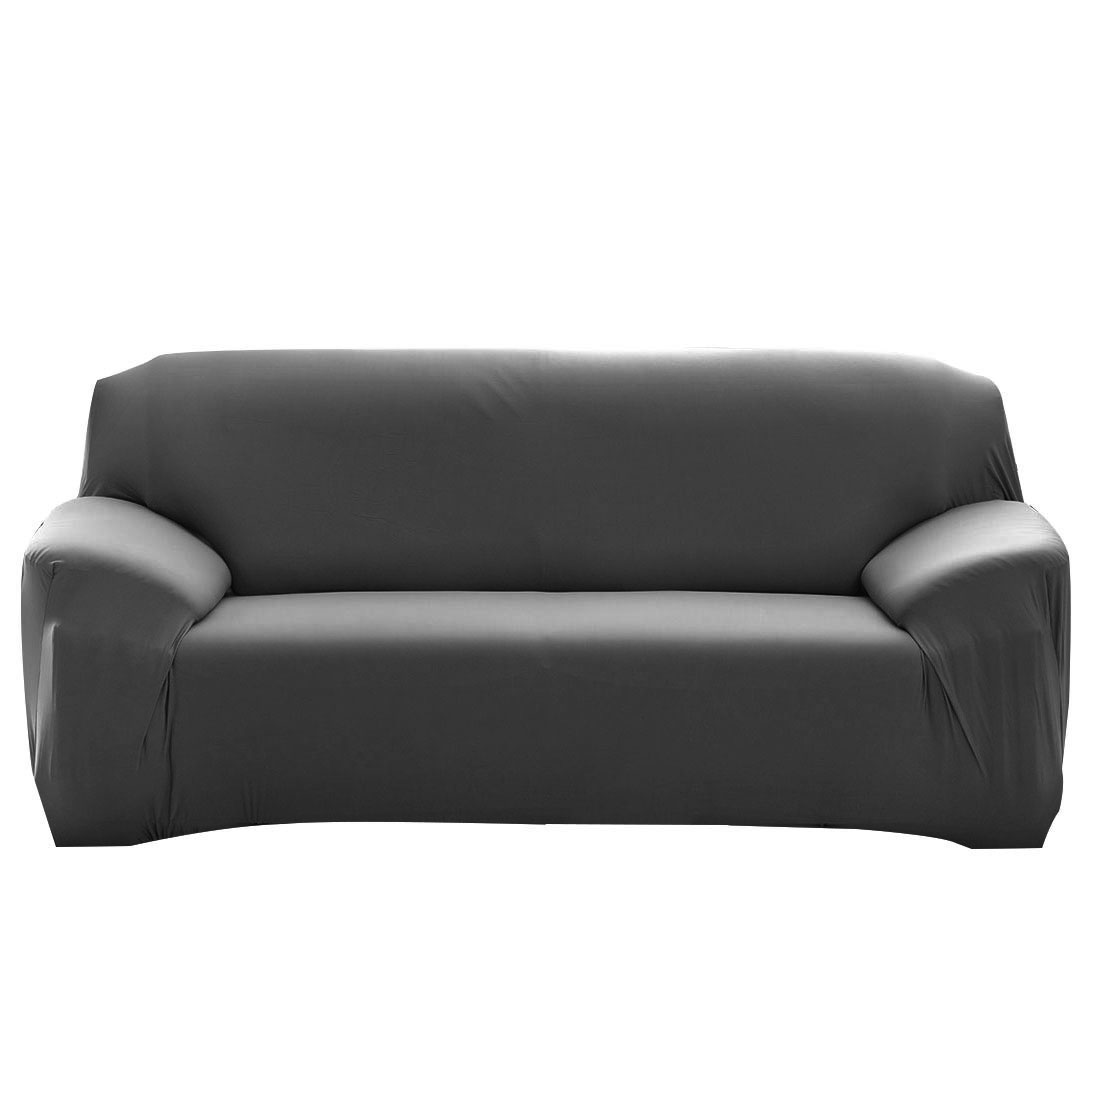 Universal Fit Stretch Chair Loveseat Couch Sofa Cover Slipcovers Gray